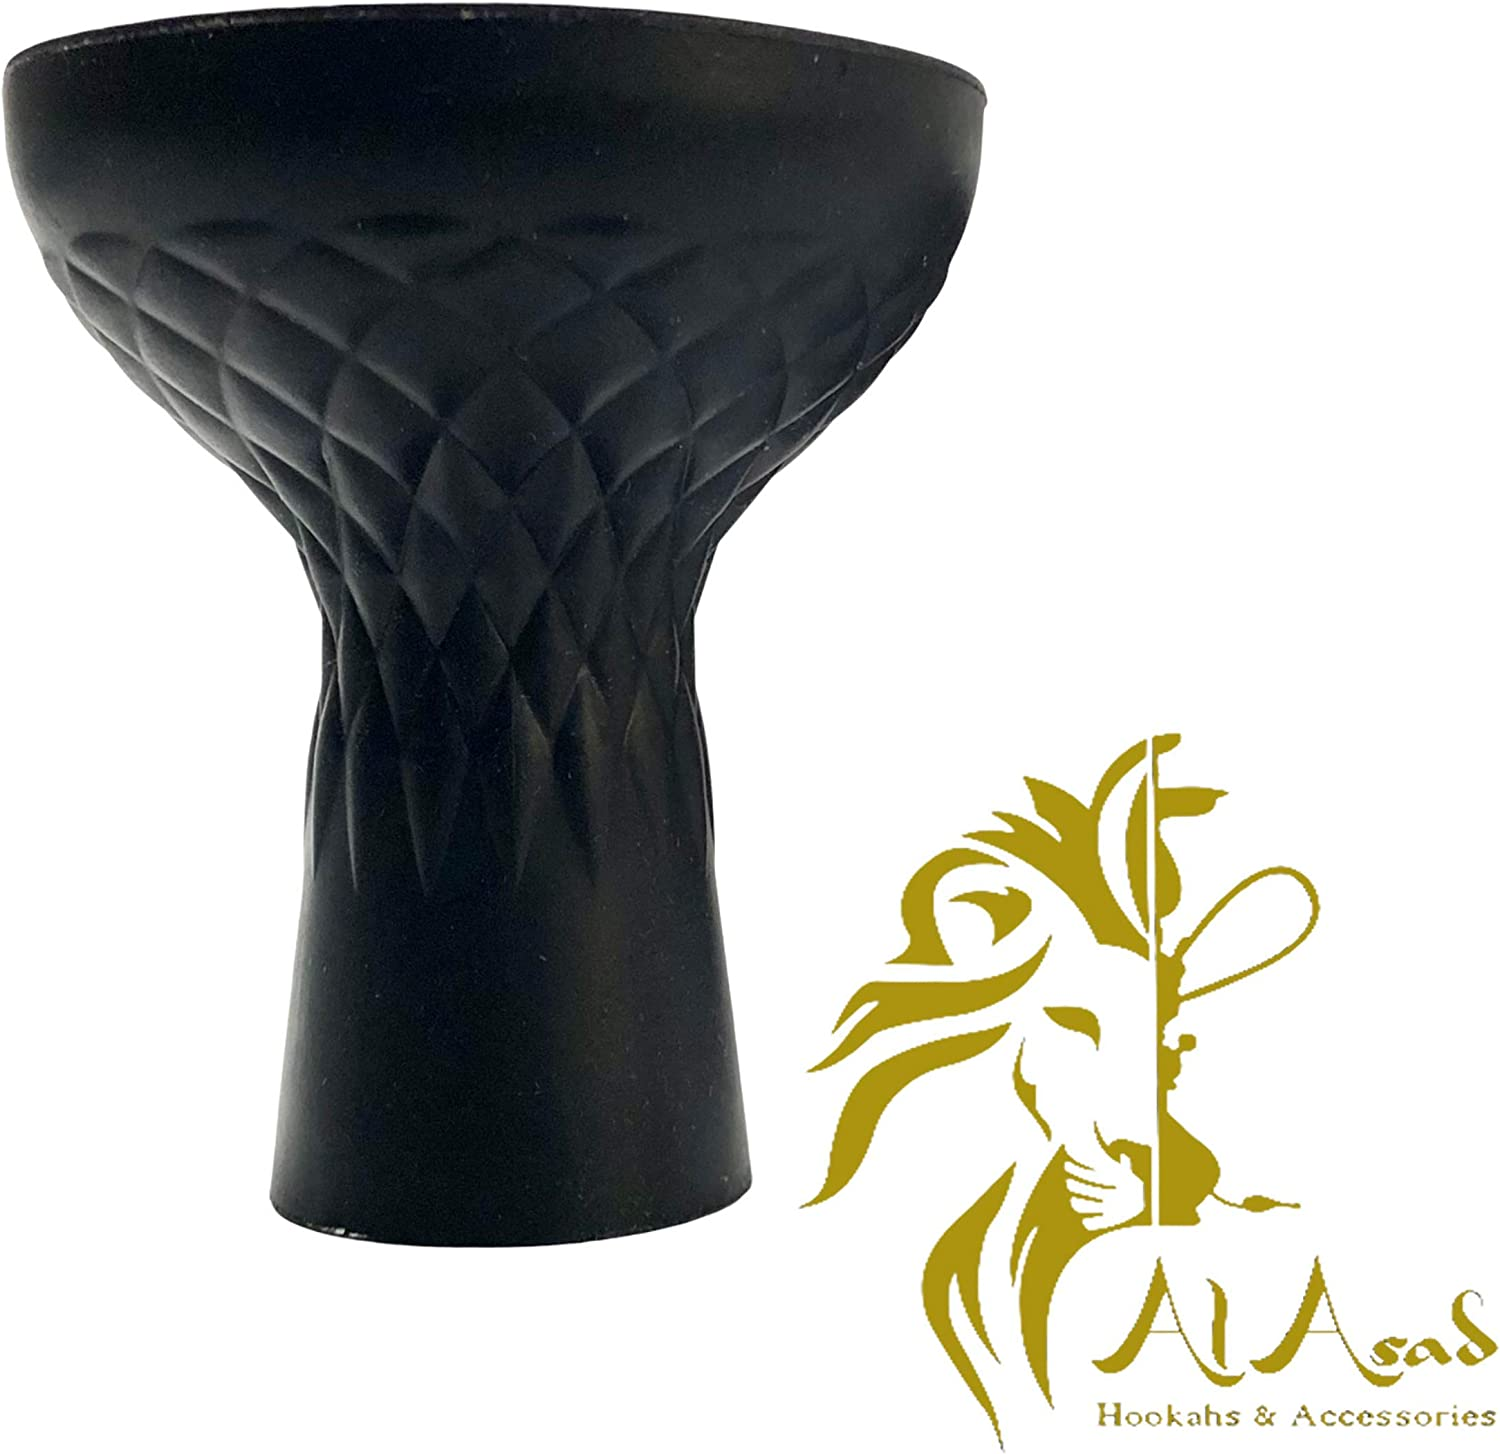 Diamond Cut Design Engraved Bowl Silicone Choice Hookah NEW before selling ☆